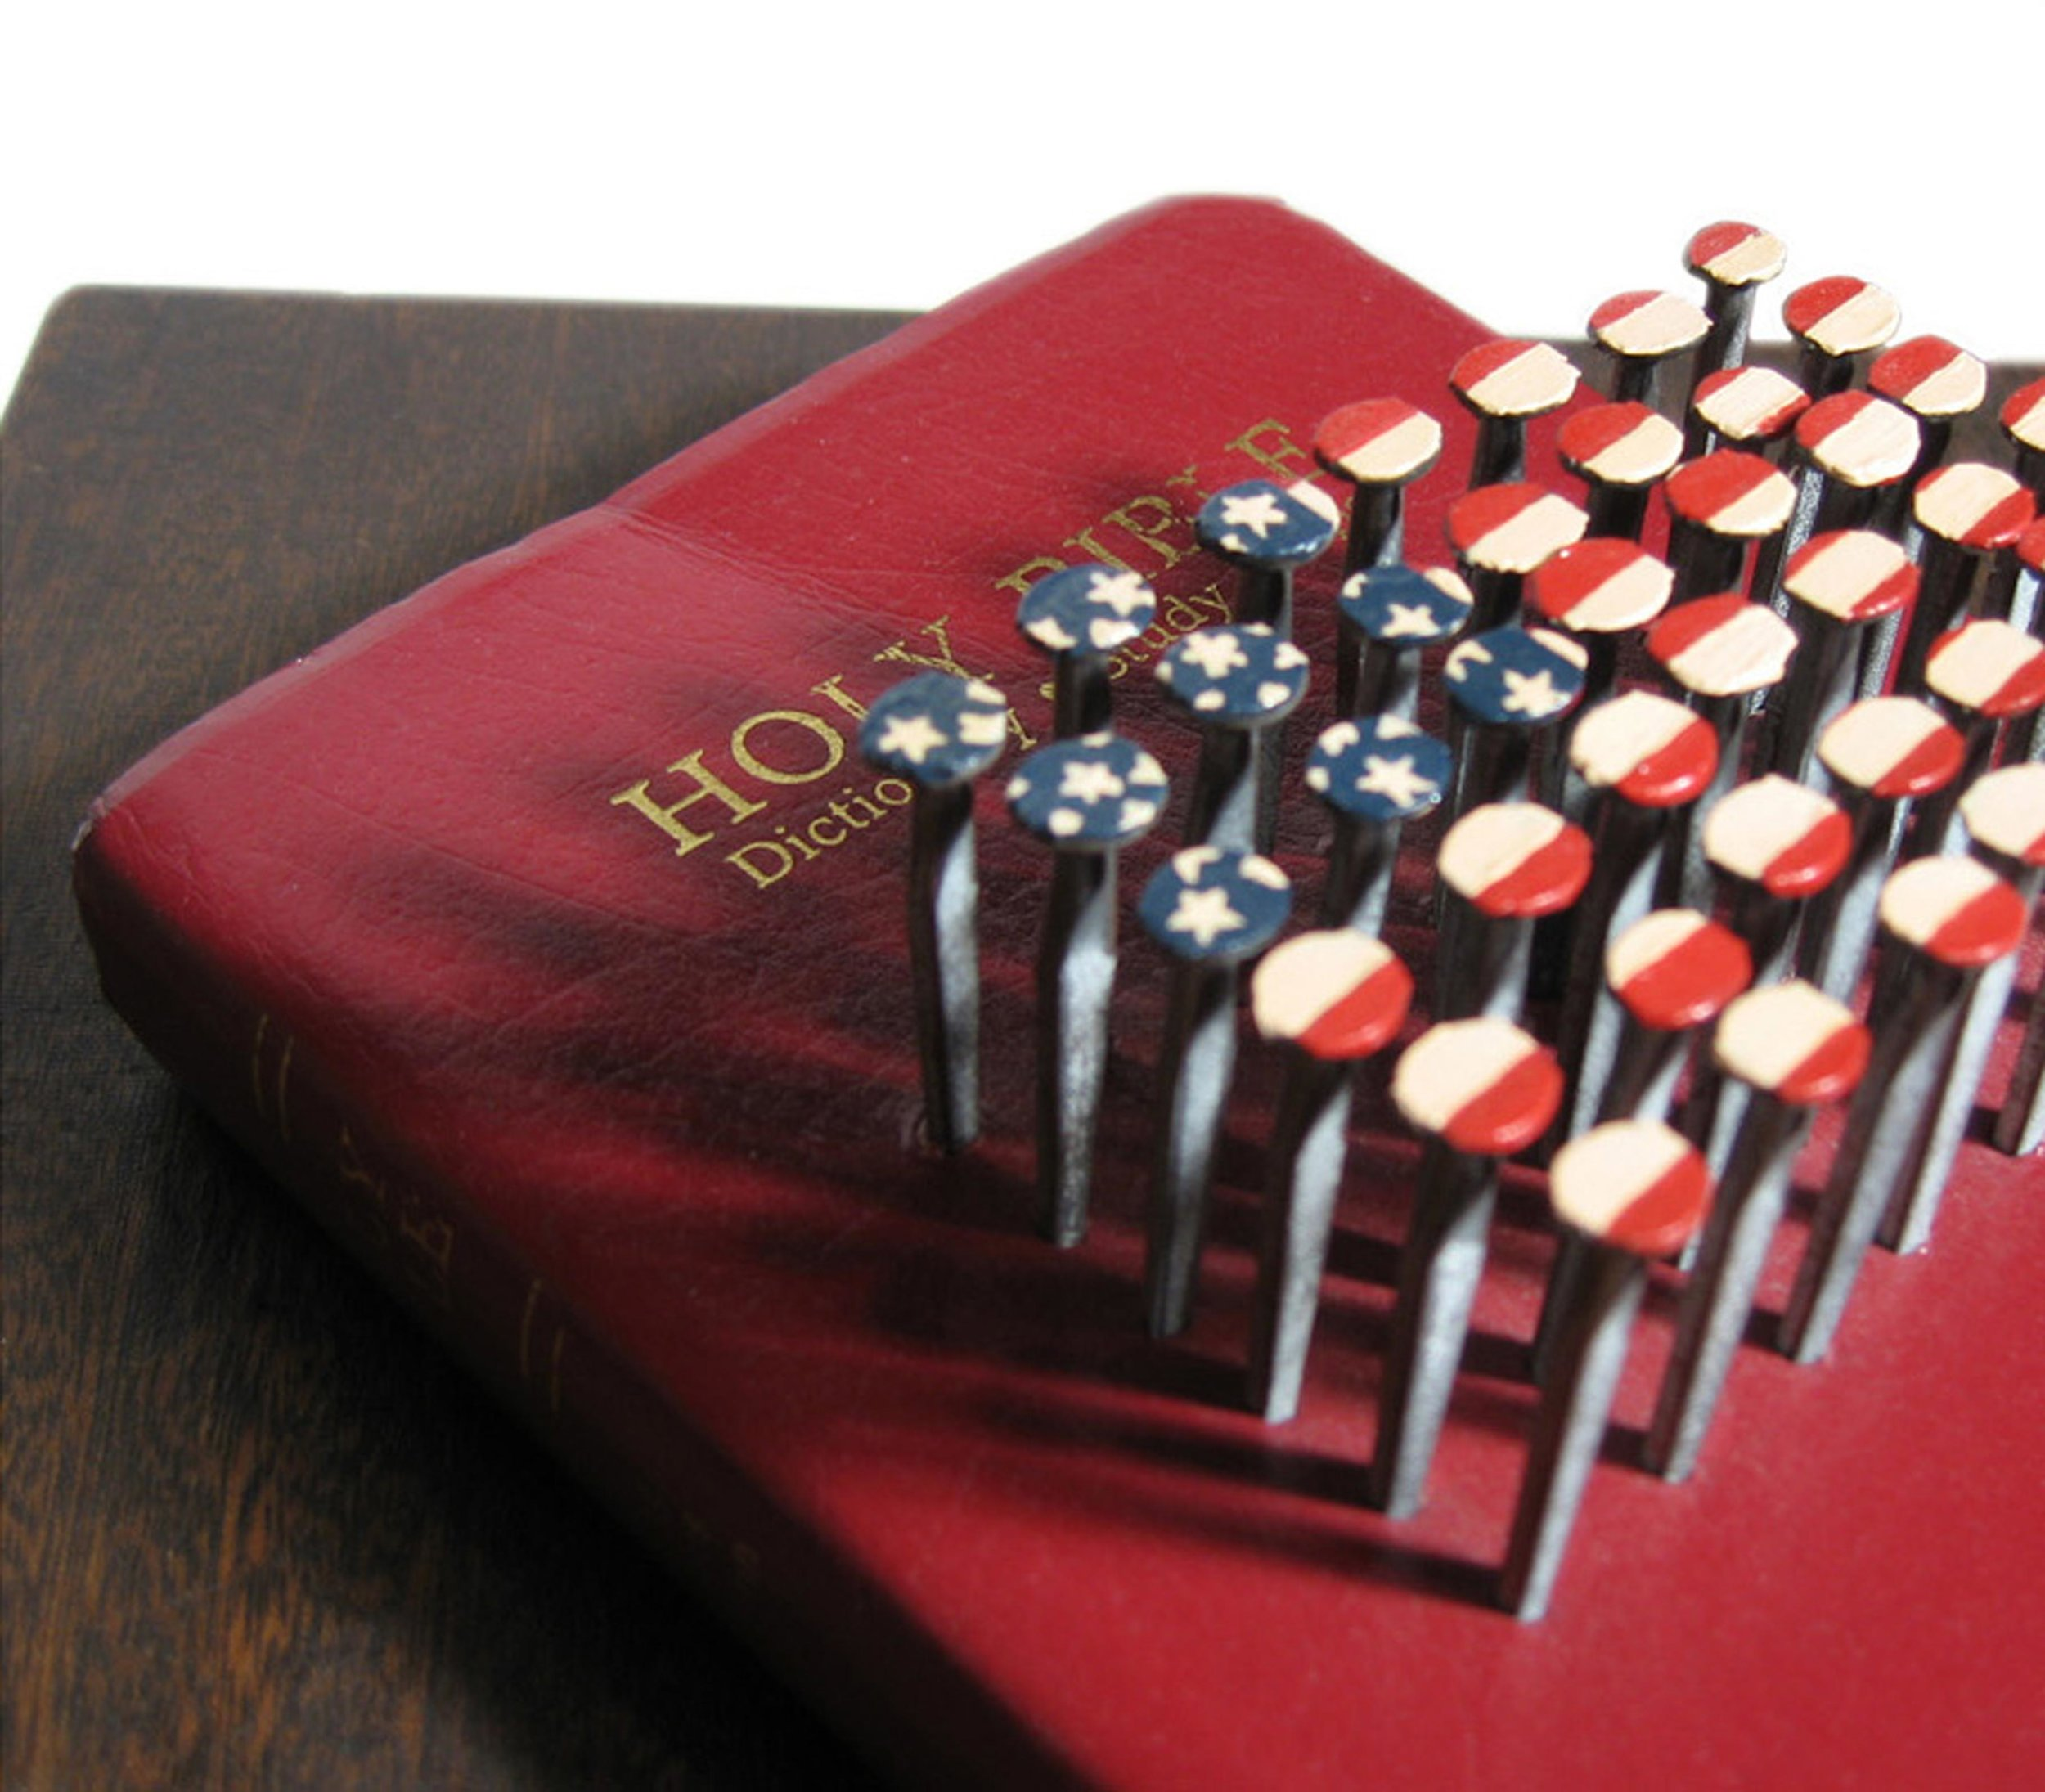 Nails and Bible  Detail of painted nails in bible